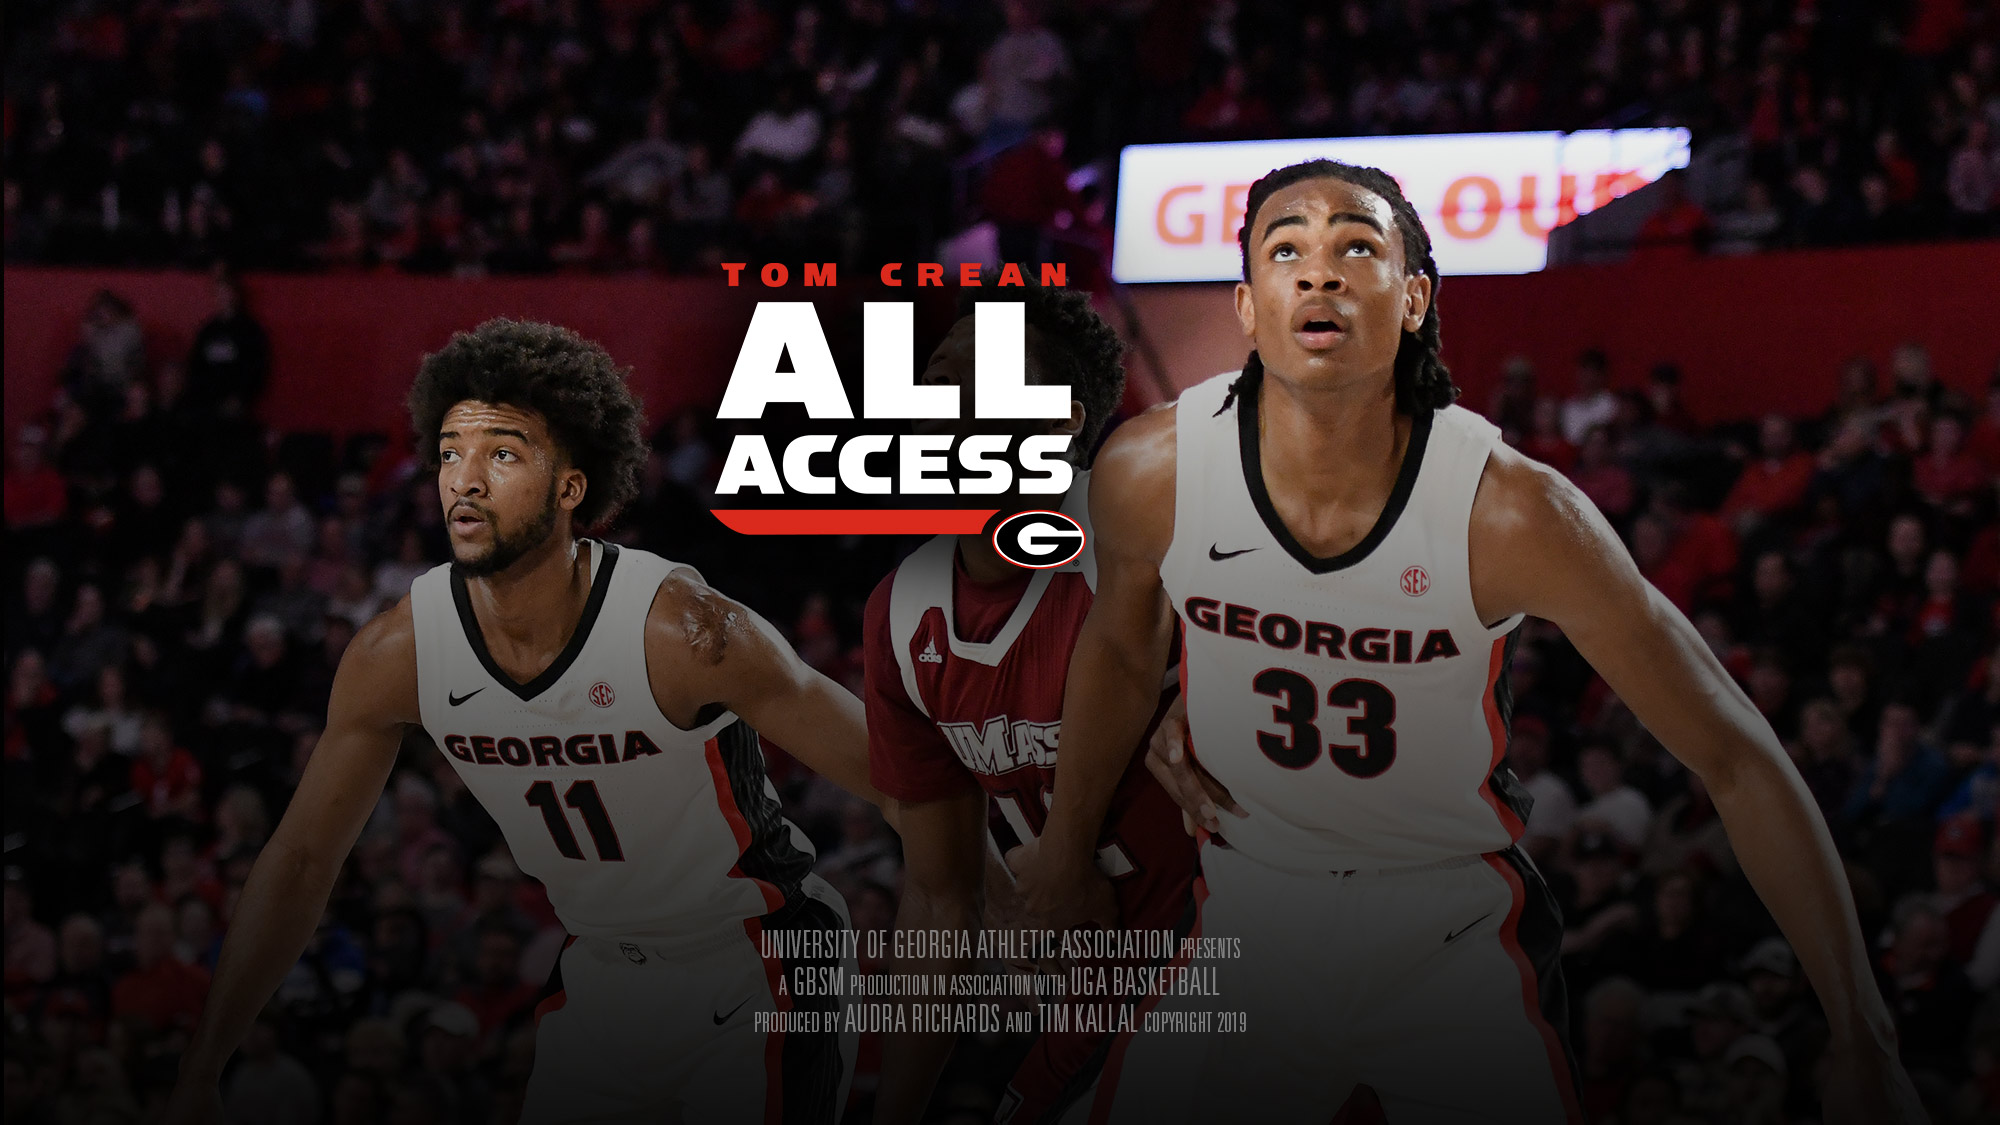 Tom Crean All Access Episode 1 University Of Georgia Athletics